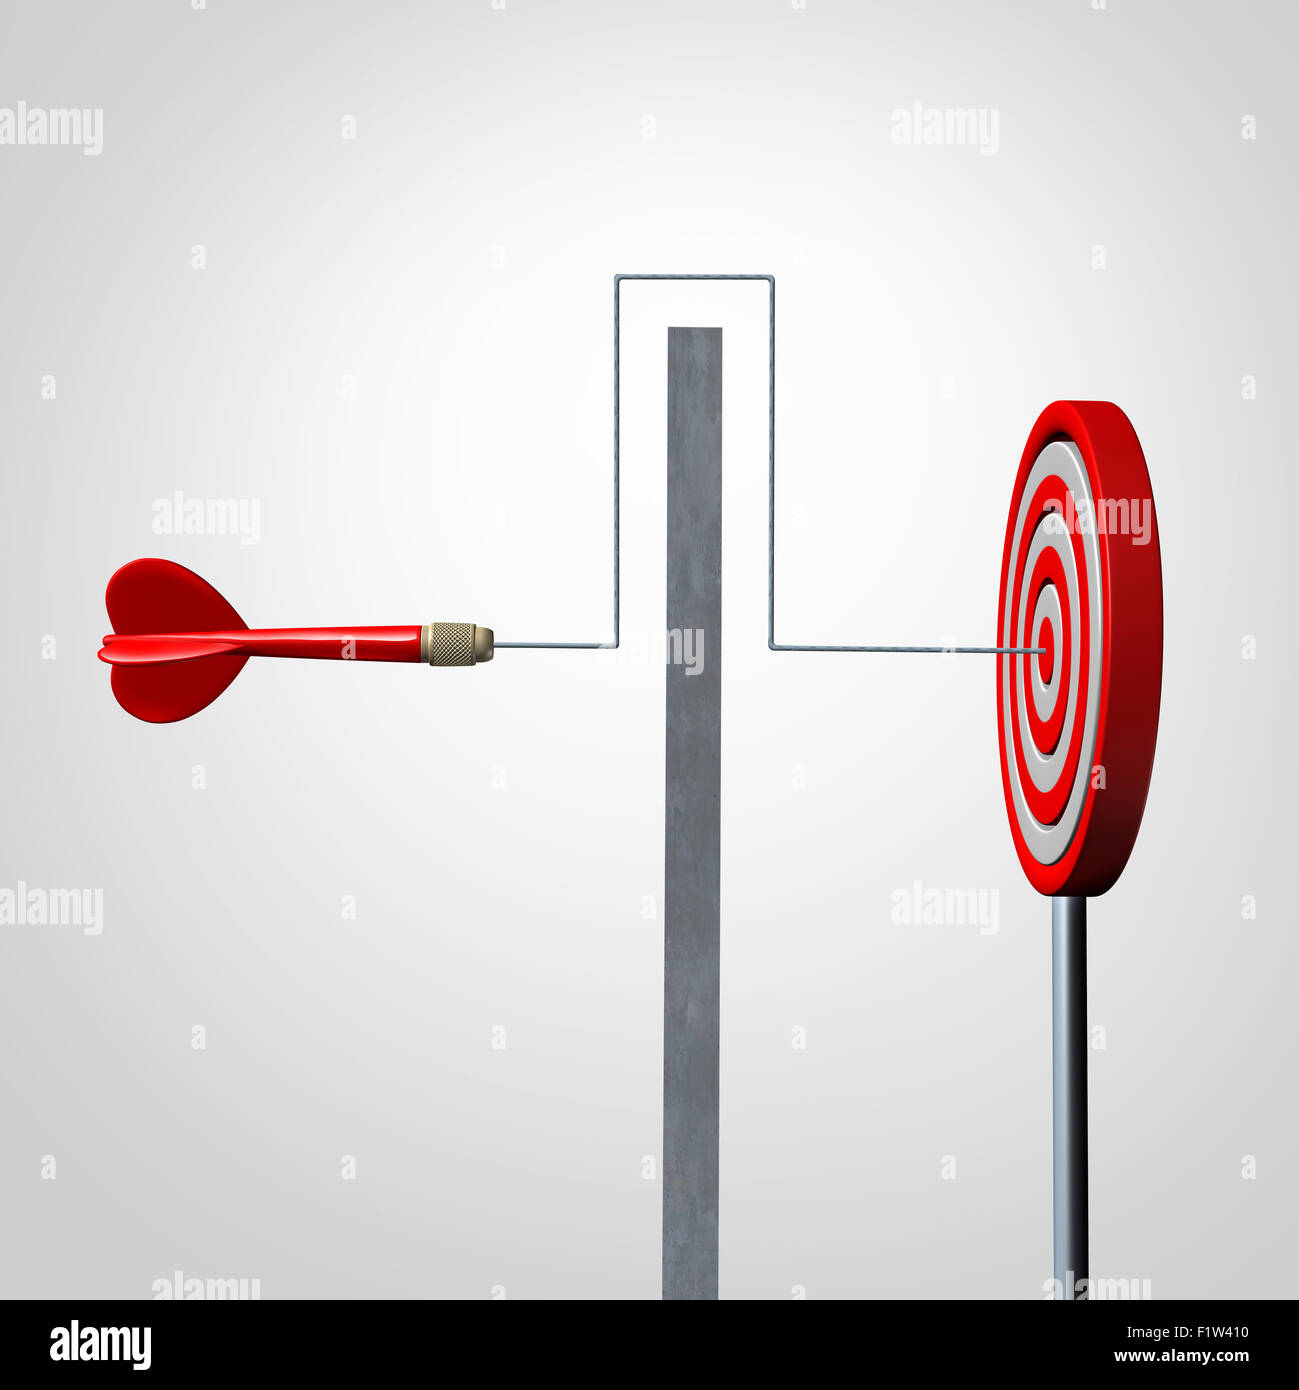 Around a barrier business concept as a red dart solving an obstacle problem by averting a wall and hitting the target - Stock Image